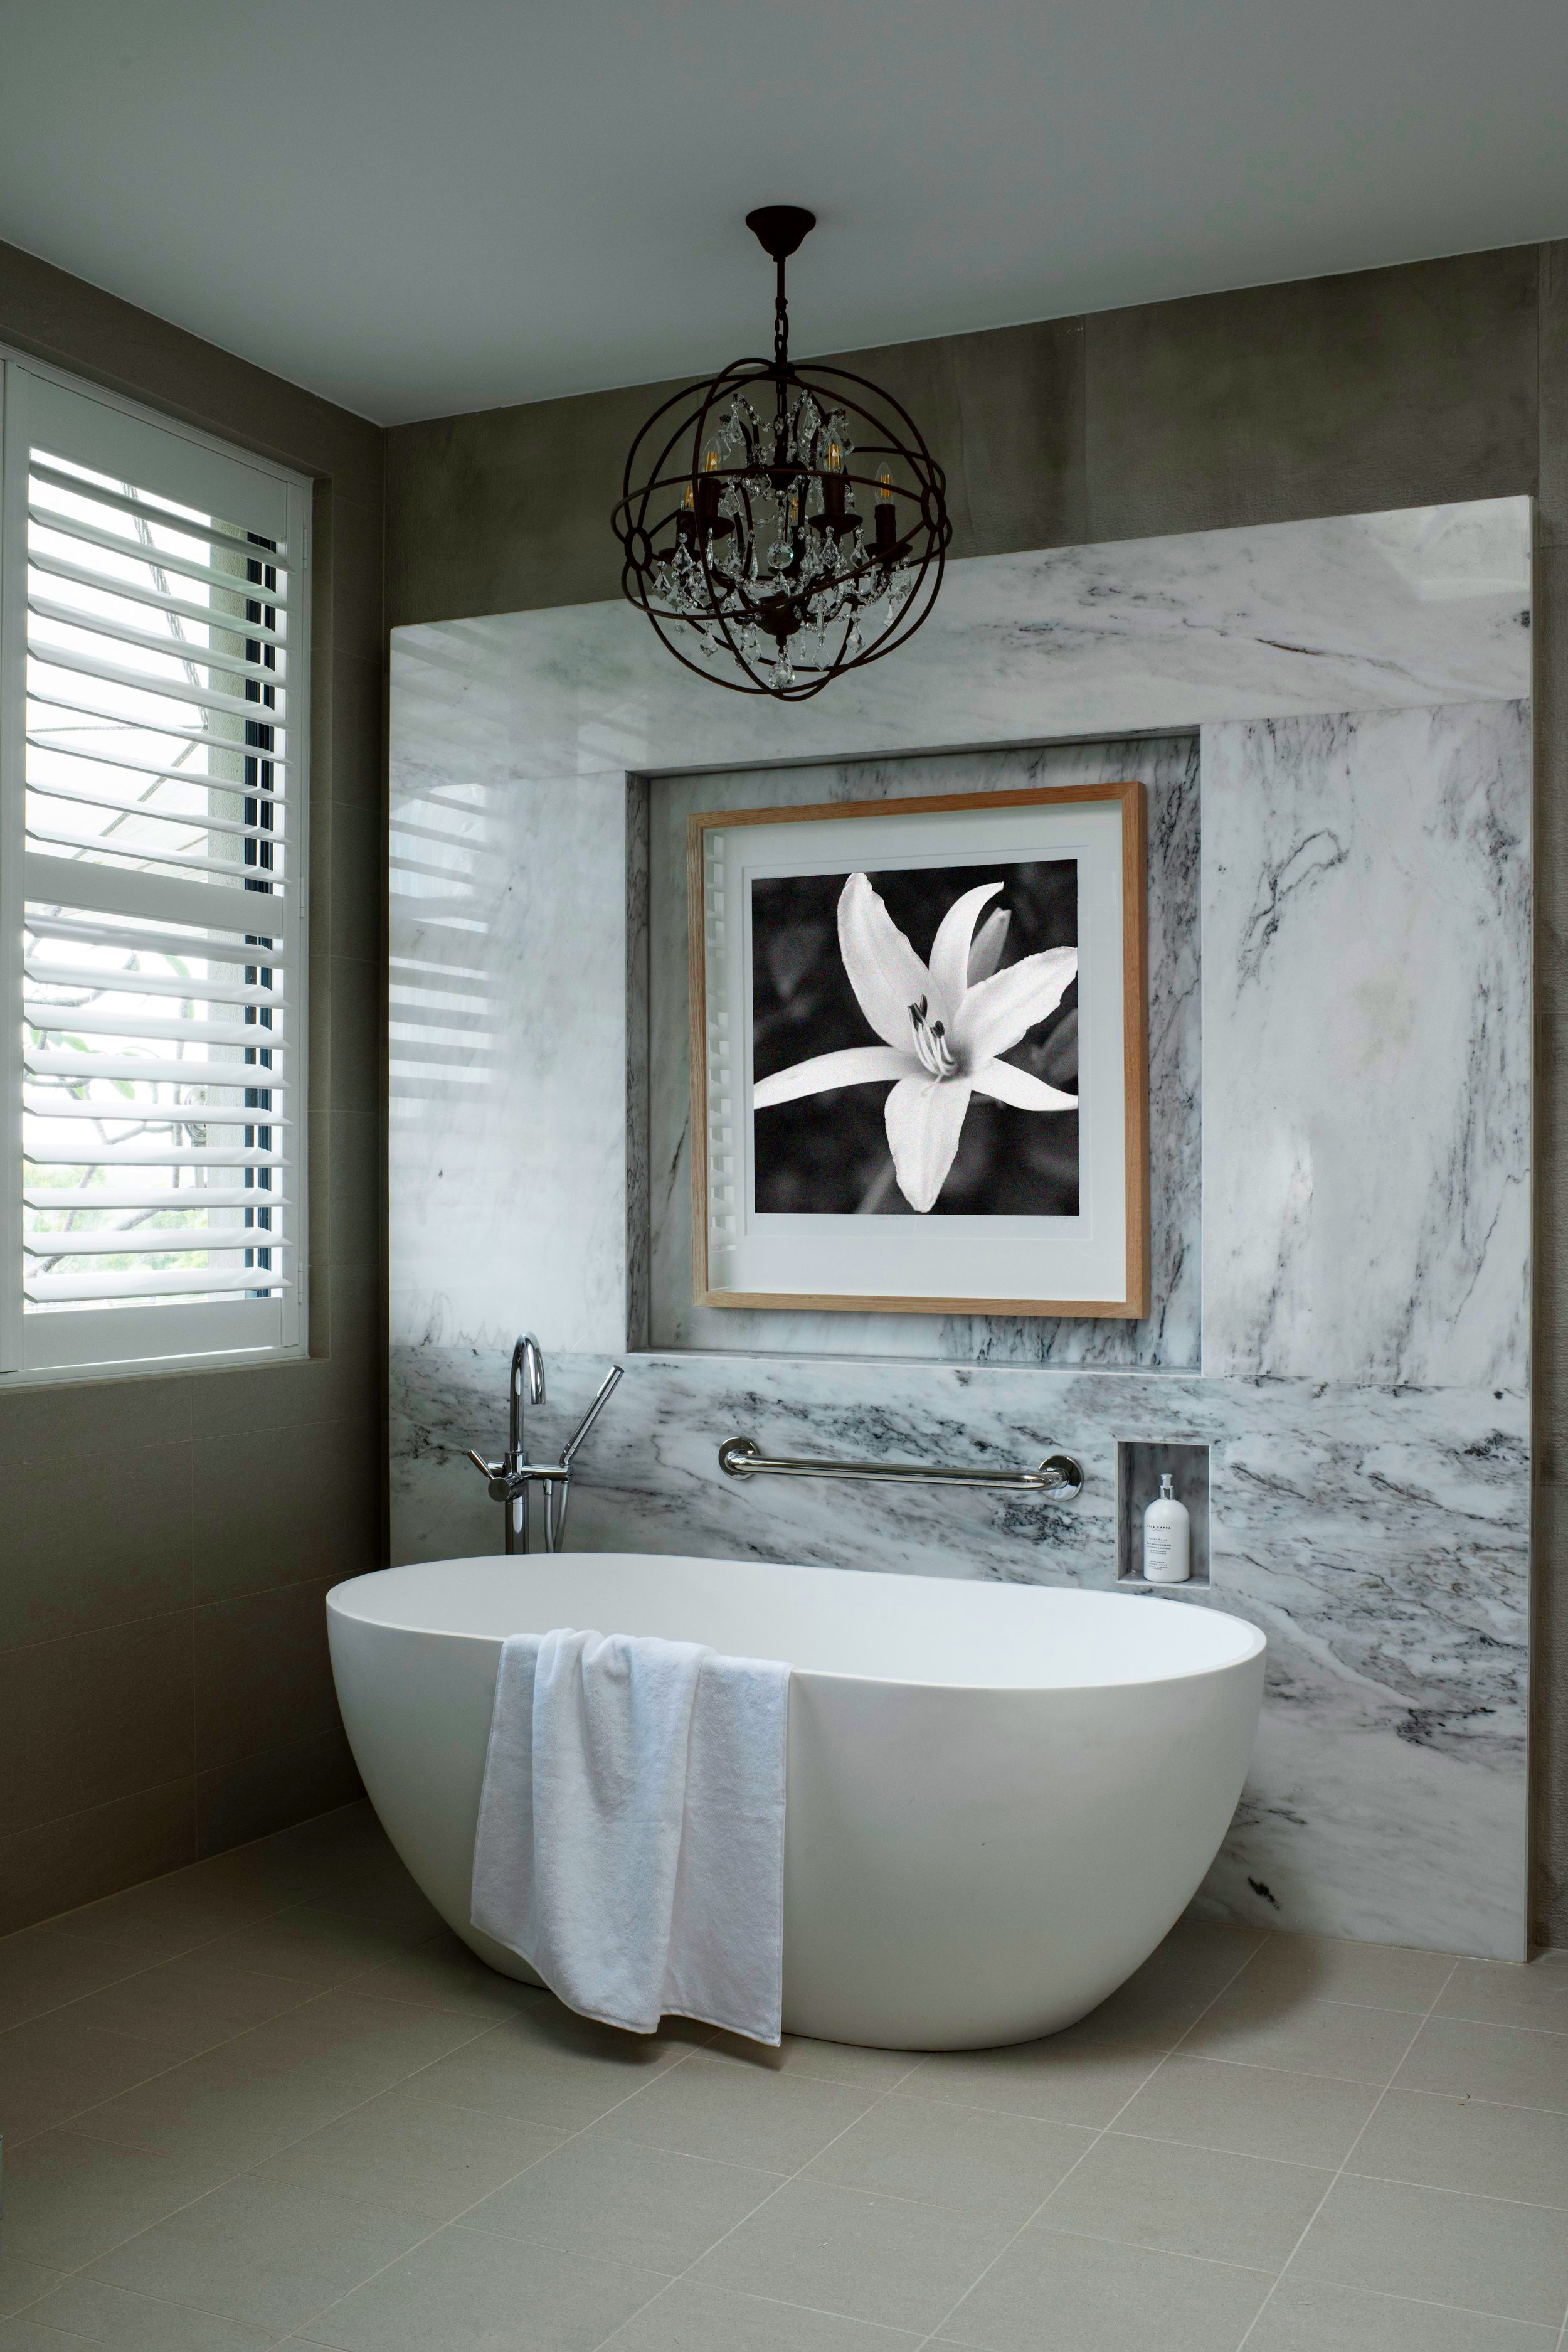 The finished bathroom run via an official project plan with deliverable dates.